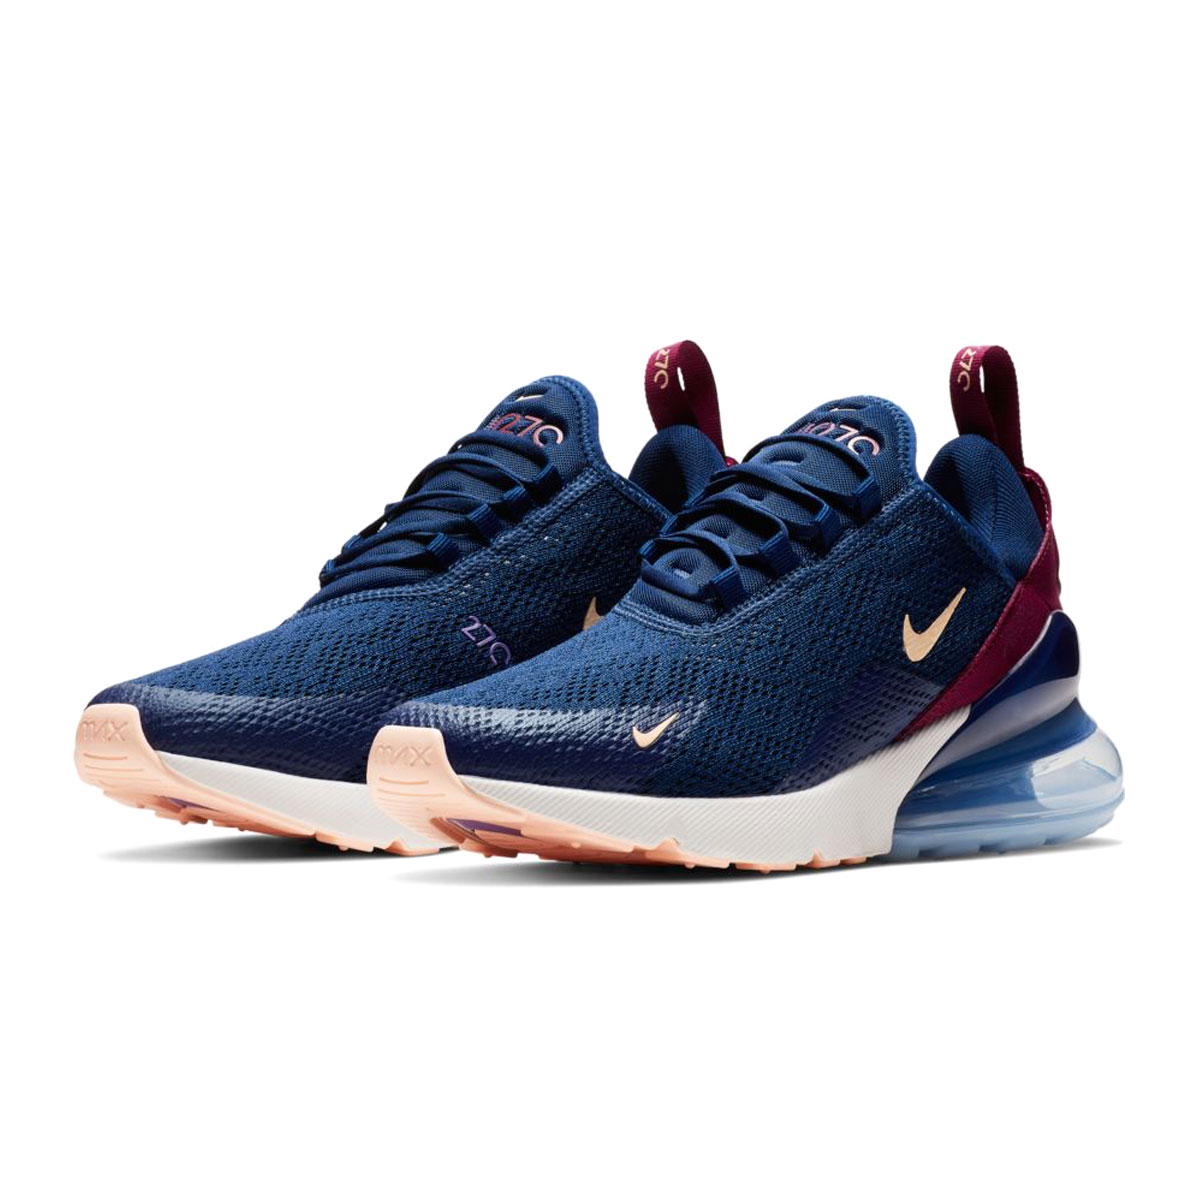 sports shoes 2a7c0 b4e2a NIKE W AIR MAX 270 (Nike women Air Max 270) BLUE VOID/CRIMSON TINT-TRUE  BERRY 19SP-I